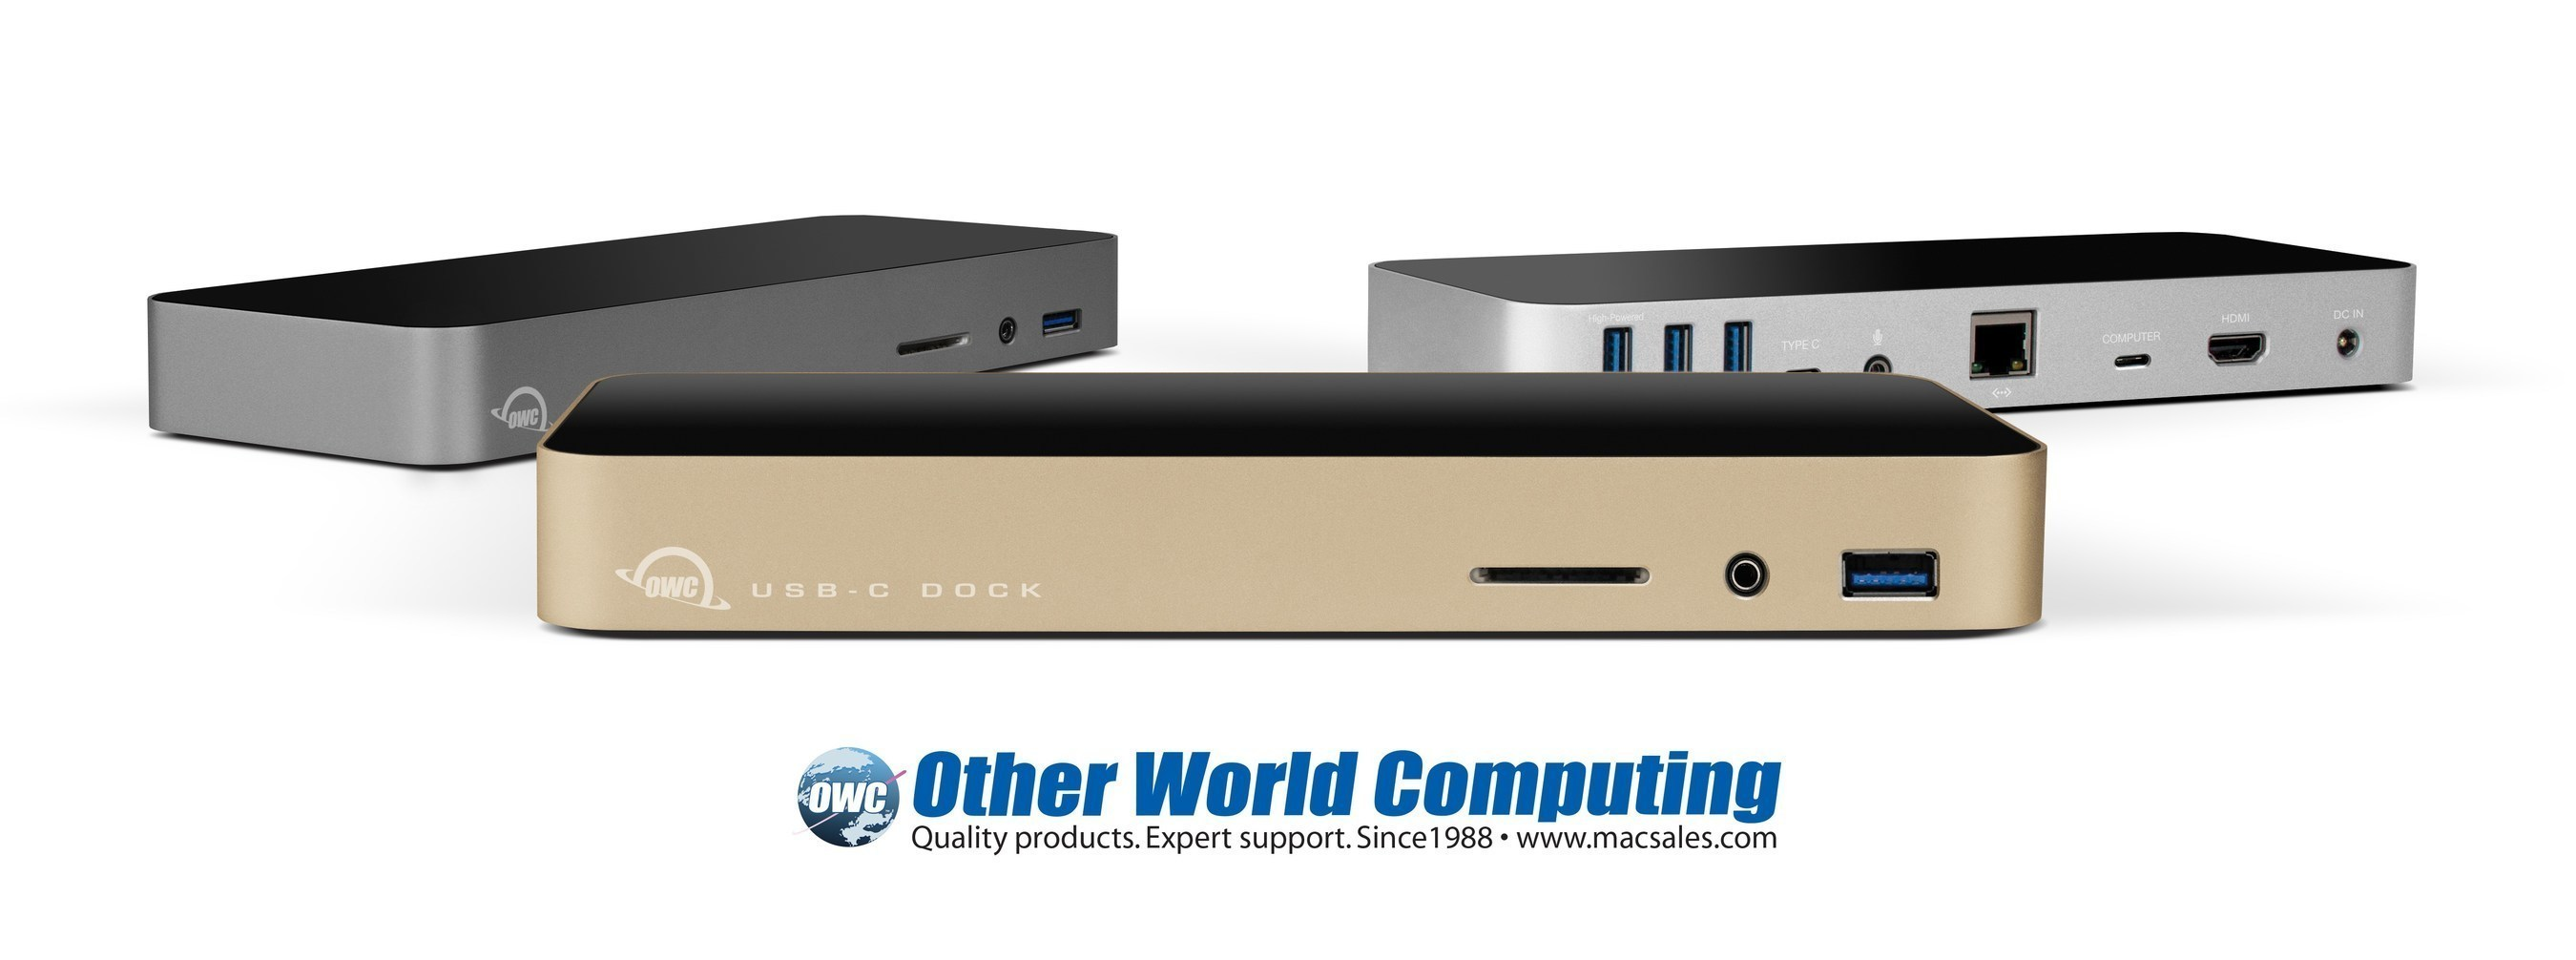 Other World Computing Announces New USB-C Dock, Available for Pre-order